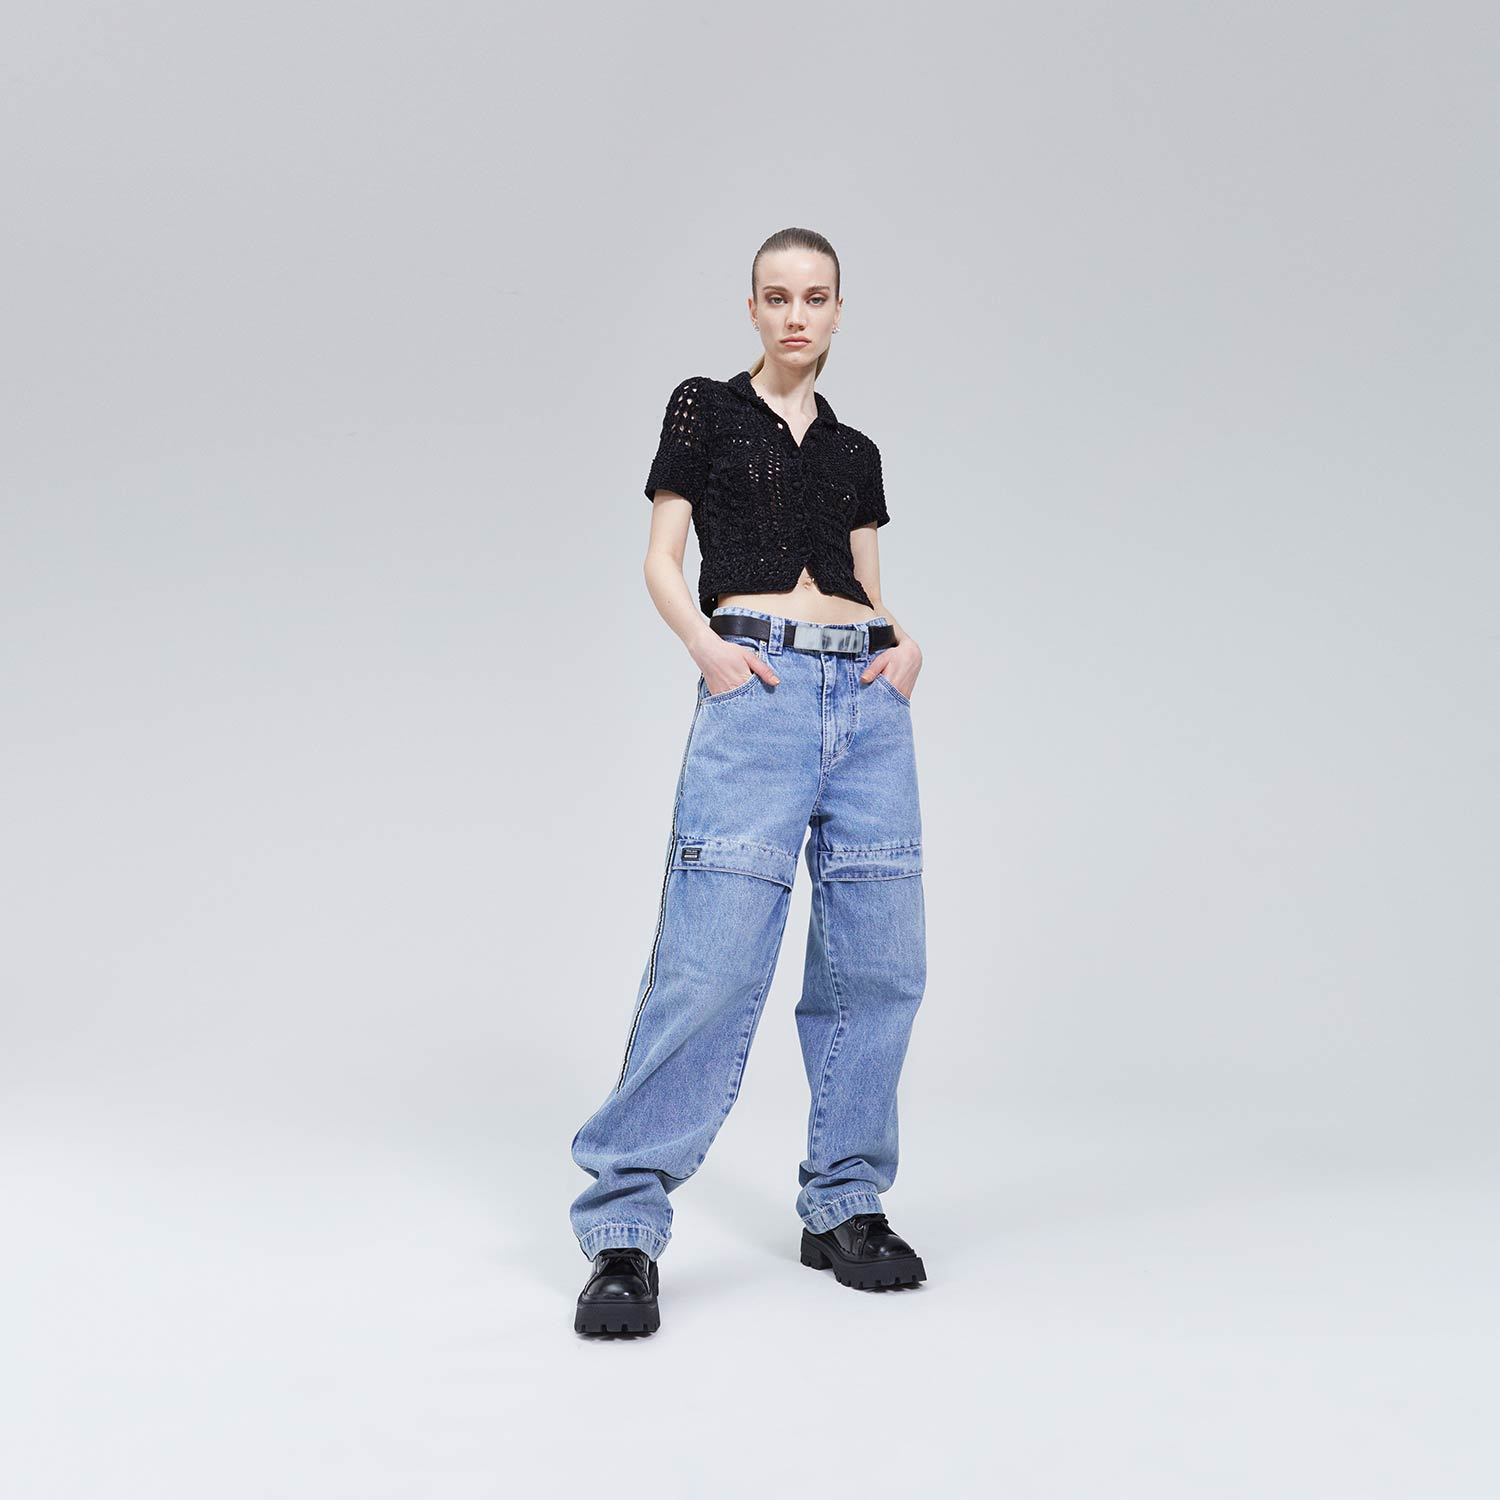 Titan Tuck Jeans by eytys, available on eytys.com for SEK2700 Hailey Baldwin Pants Exact Product